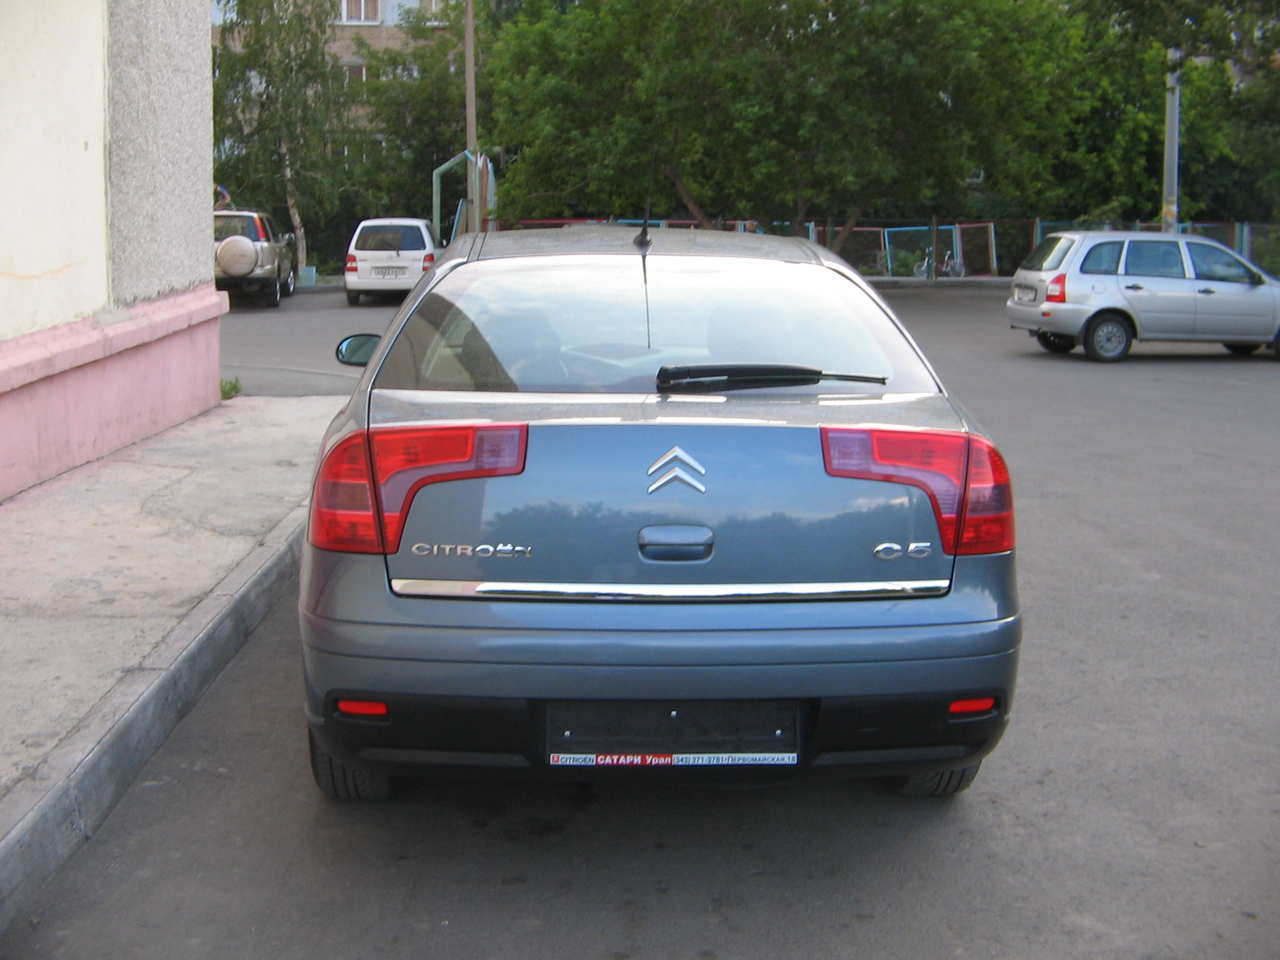 2006 citroen c5 photos 2 0 gasoline ff manual for sale. Black Bedroom Furniture Sets. Home Design Ideas